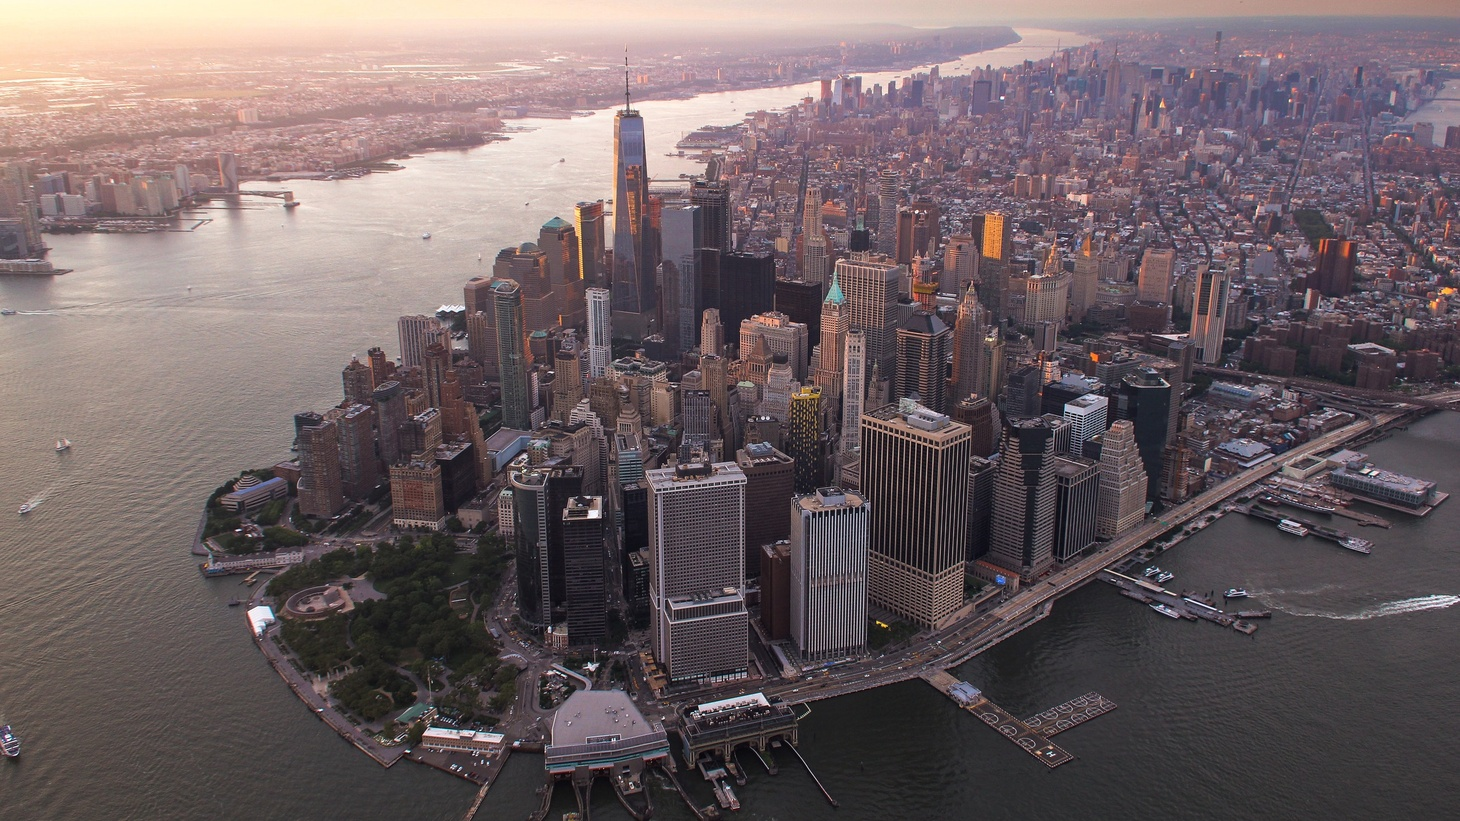 A view of Manhattan, New York City.